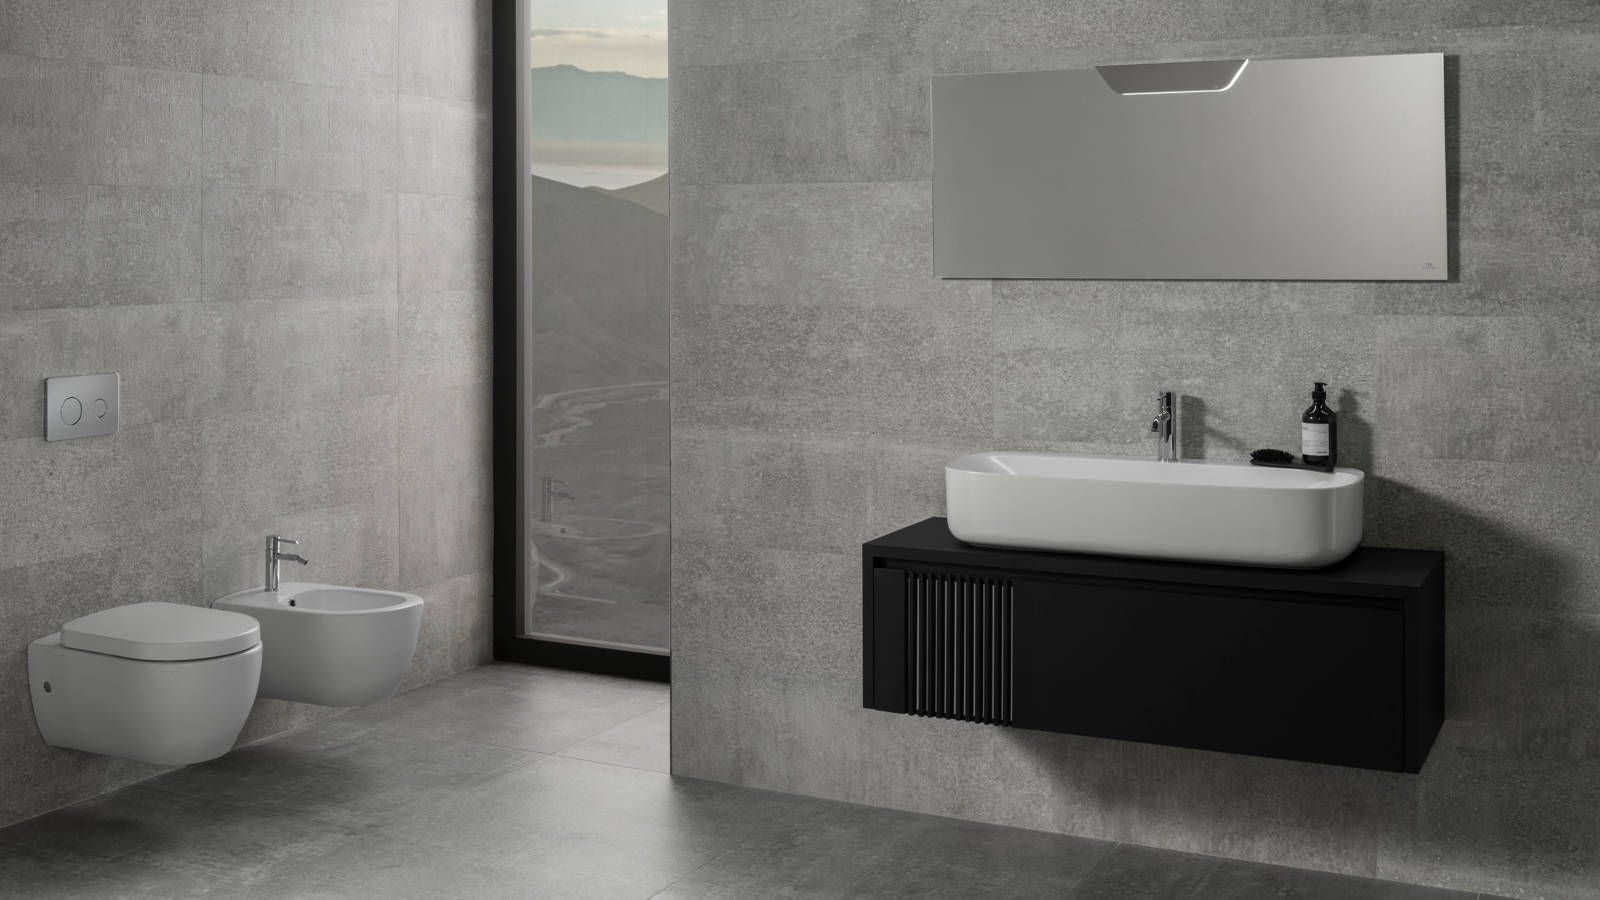 Mobilier De Salle De Bain Meubles De Salle De Bain Porcelanosa Bathroom Furniture Bathroom Toilet